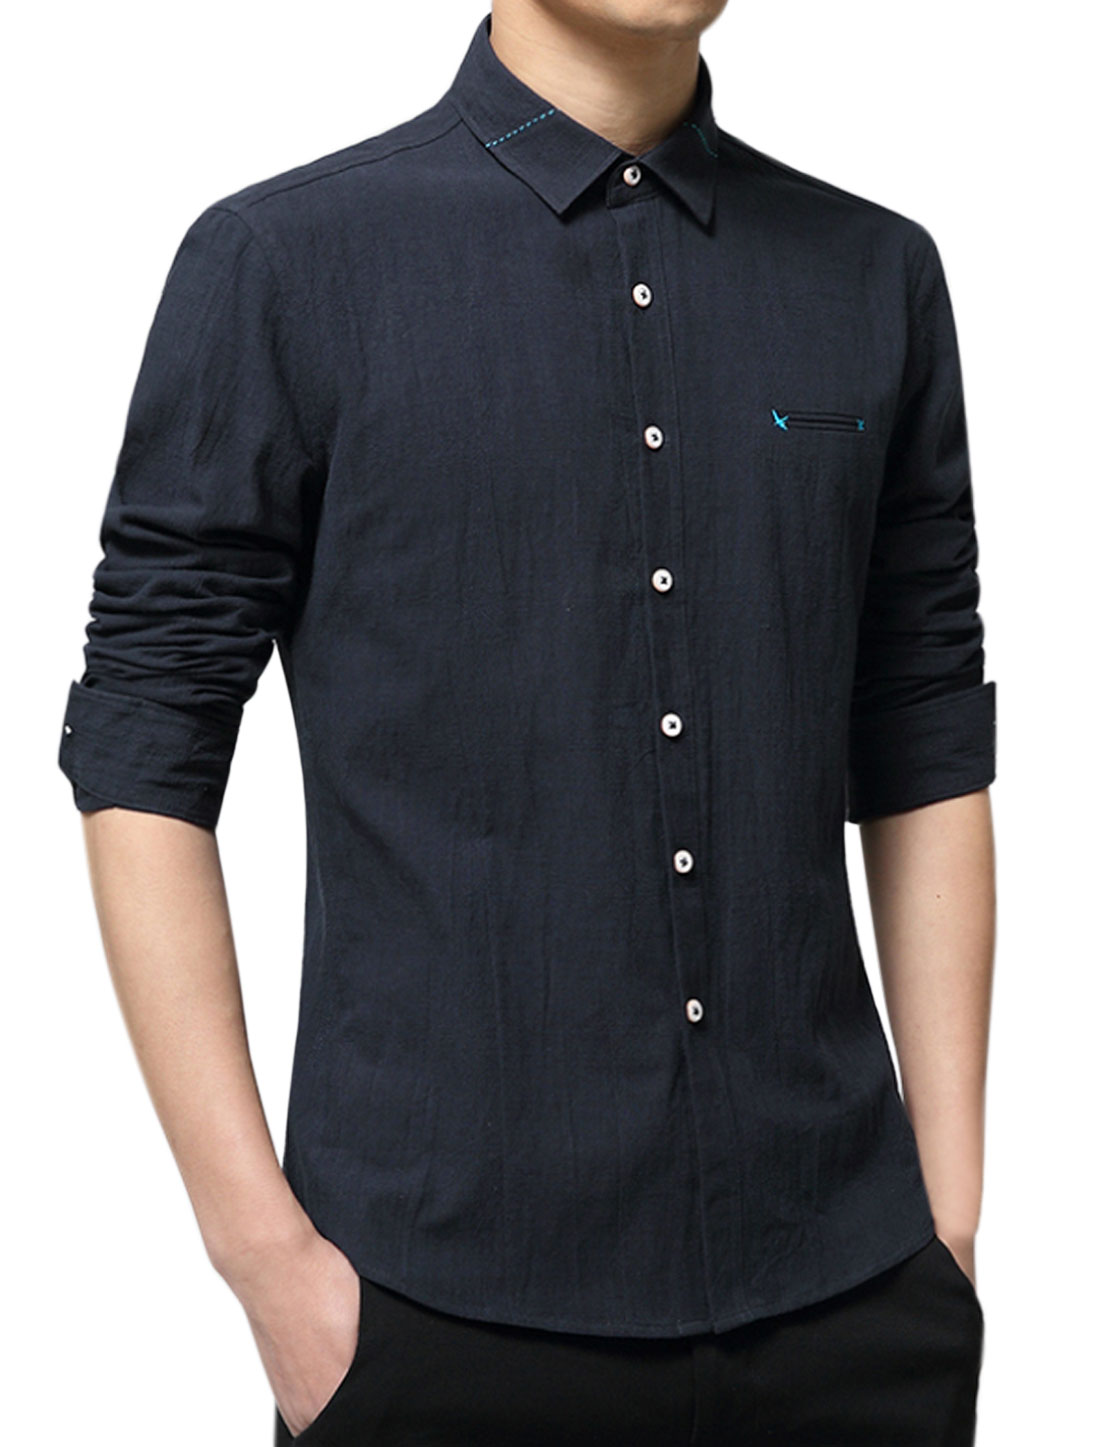 Men Collared Single Breasted Long Sleeves Slim Fit Shirt Navy Blue M